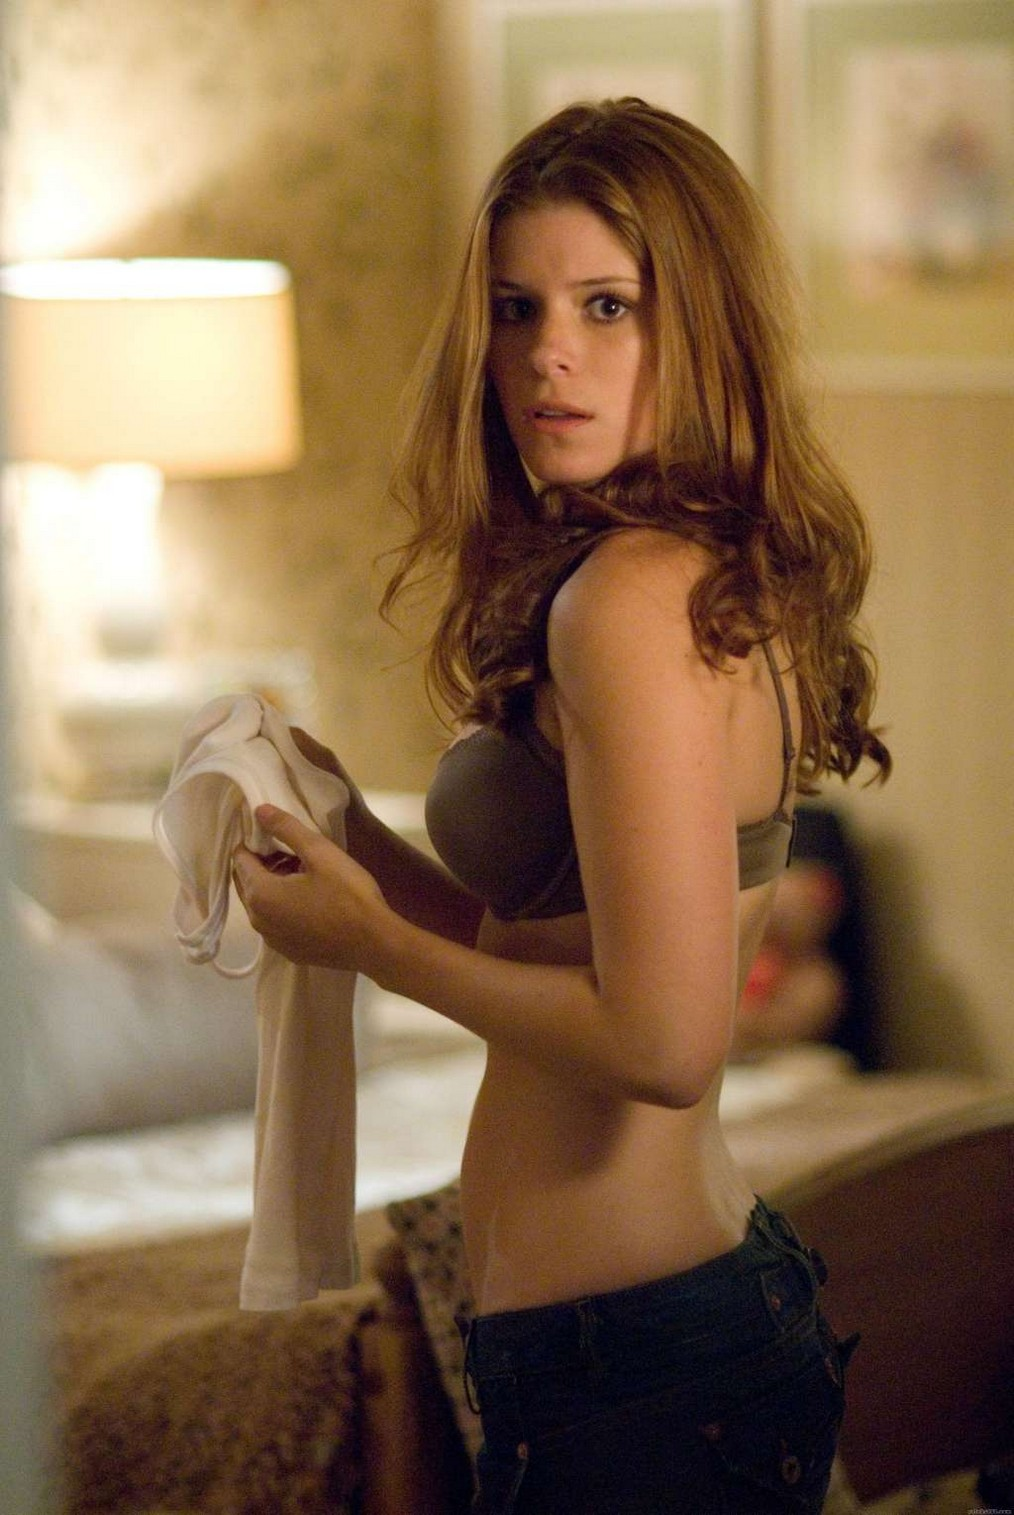 topless-kate-mara-shows-off-her-diet-in-a-movie-photo-u1-1.jpg